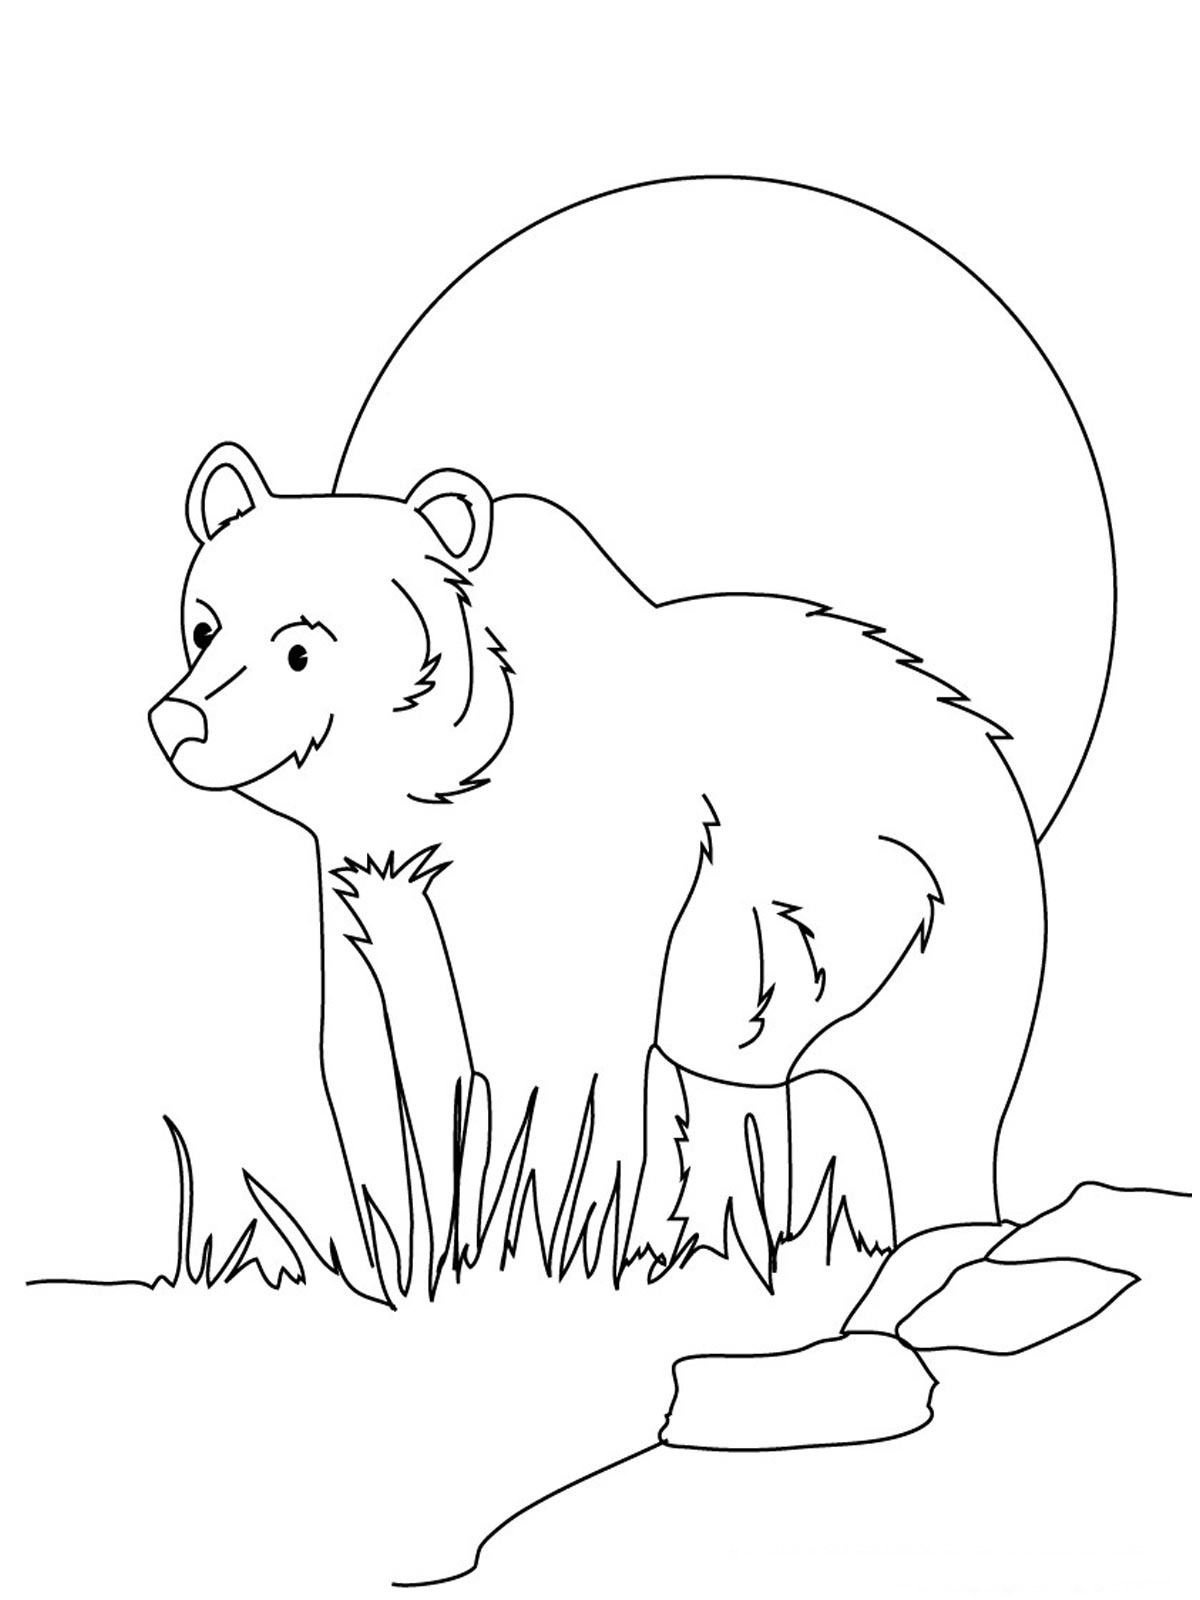 Bear Coloring Pages Realistic Animal Coloring Pages Bear Coloring Pages Teddy Bear Coloring Pages